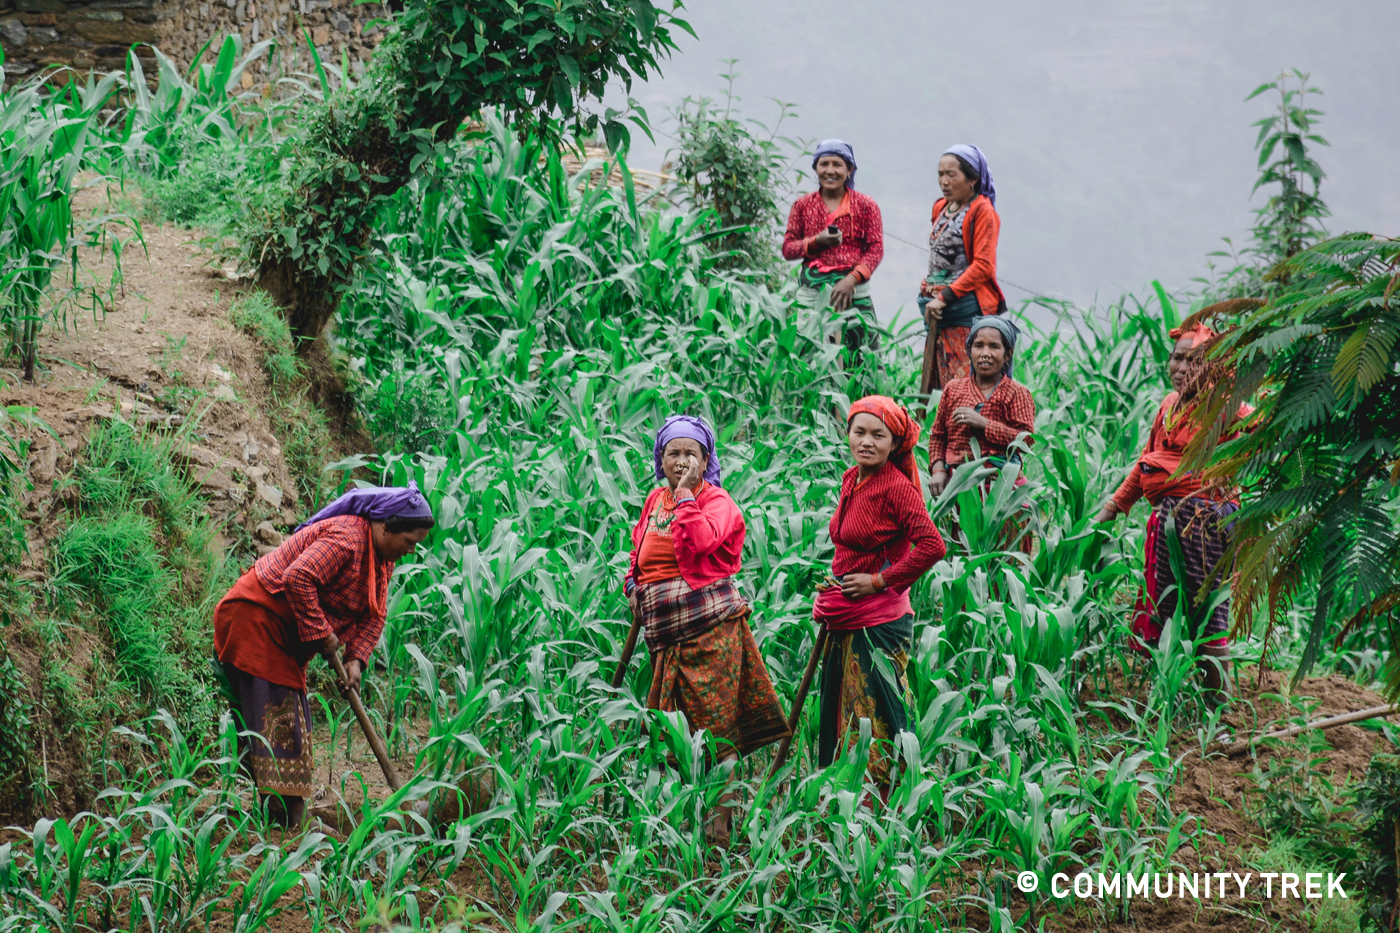 Tamang women working in their farm.